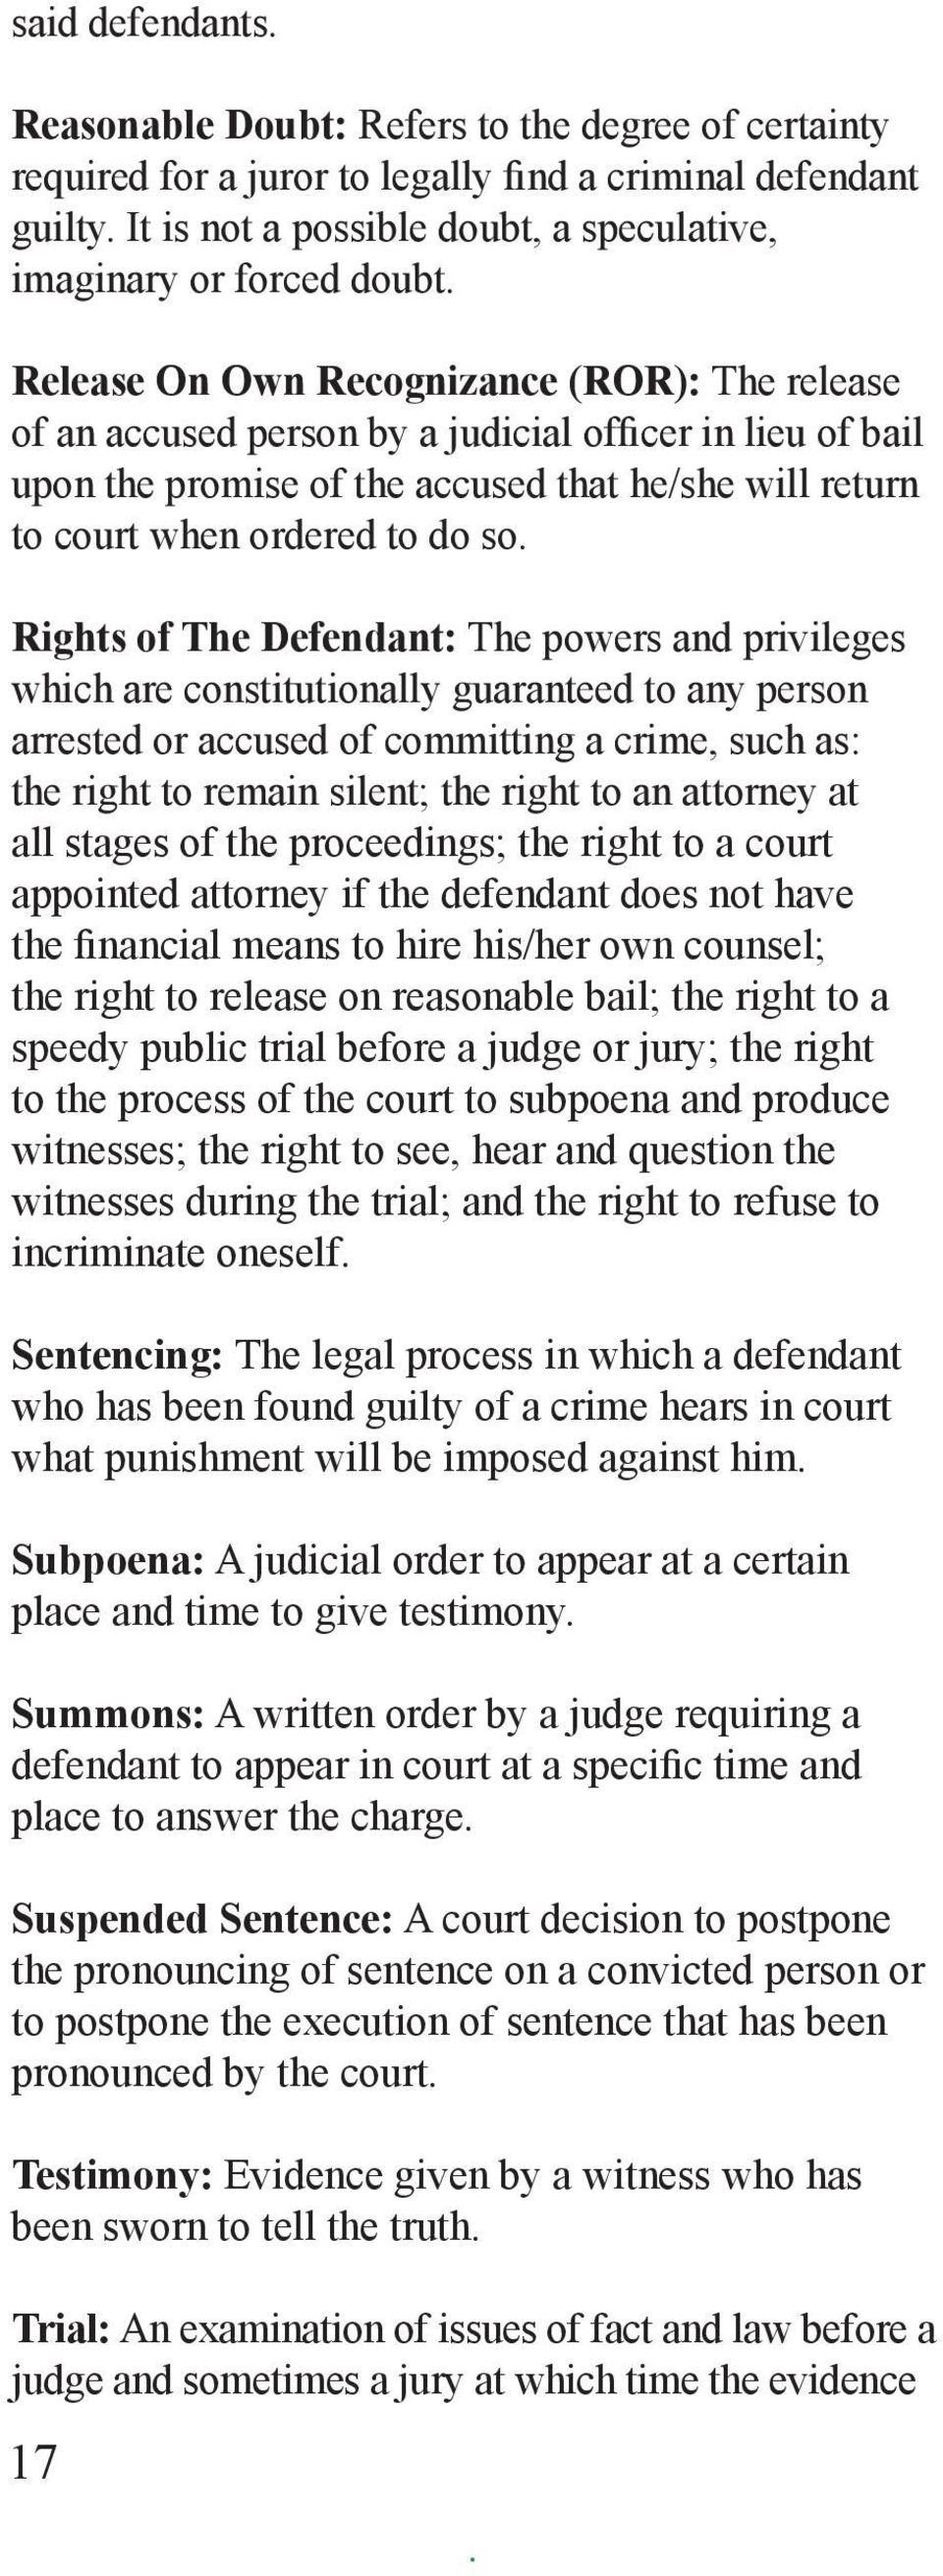 Rights of The Defendant: The powers and privileges which are constitutionally guaranteed to any person arrested or accused of committing a crime, such as: the right to remain silent; the right to an